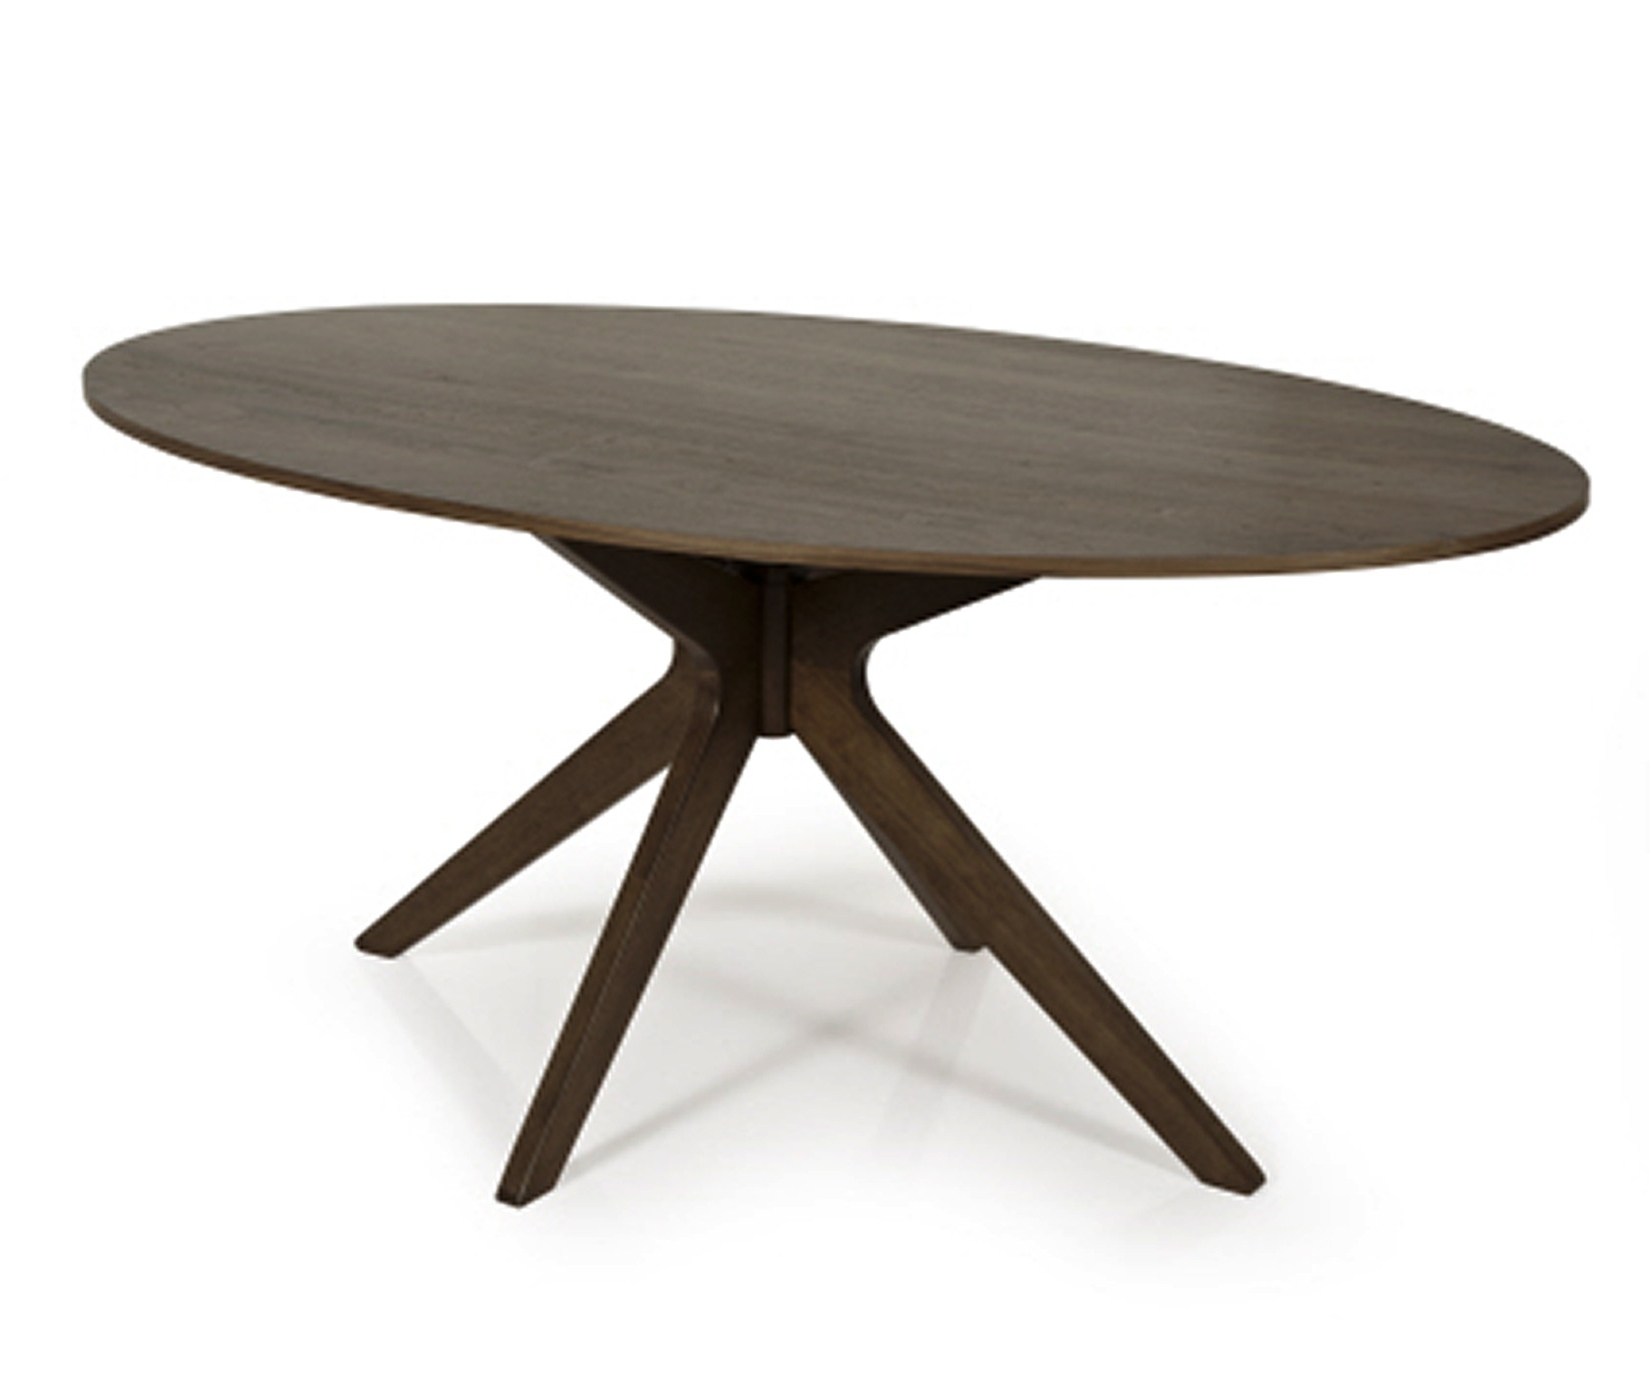 Buy Extending Oval Dining Tables – Furniture Direct Uk With Trendy Oval Dining Tables For Sale (View 7 of 25)